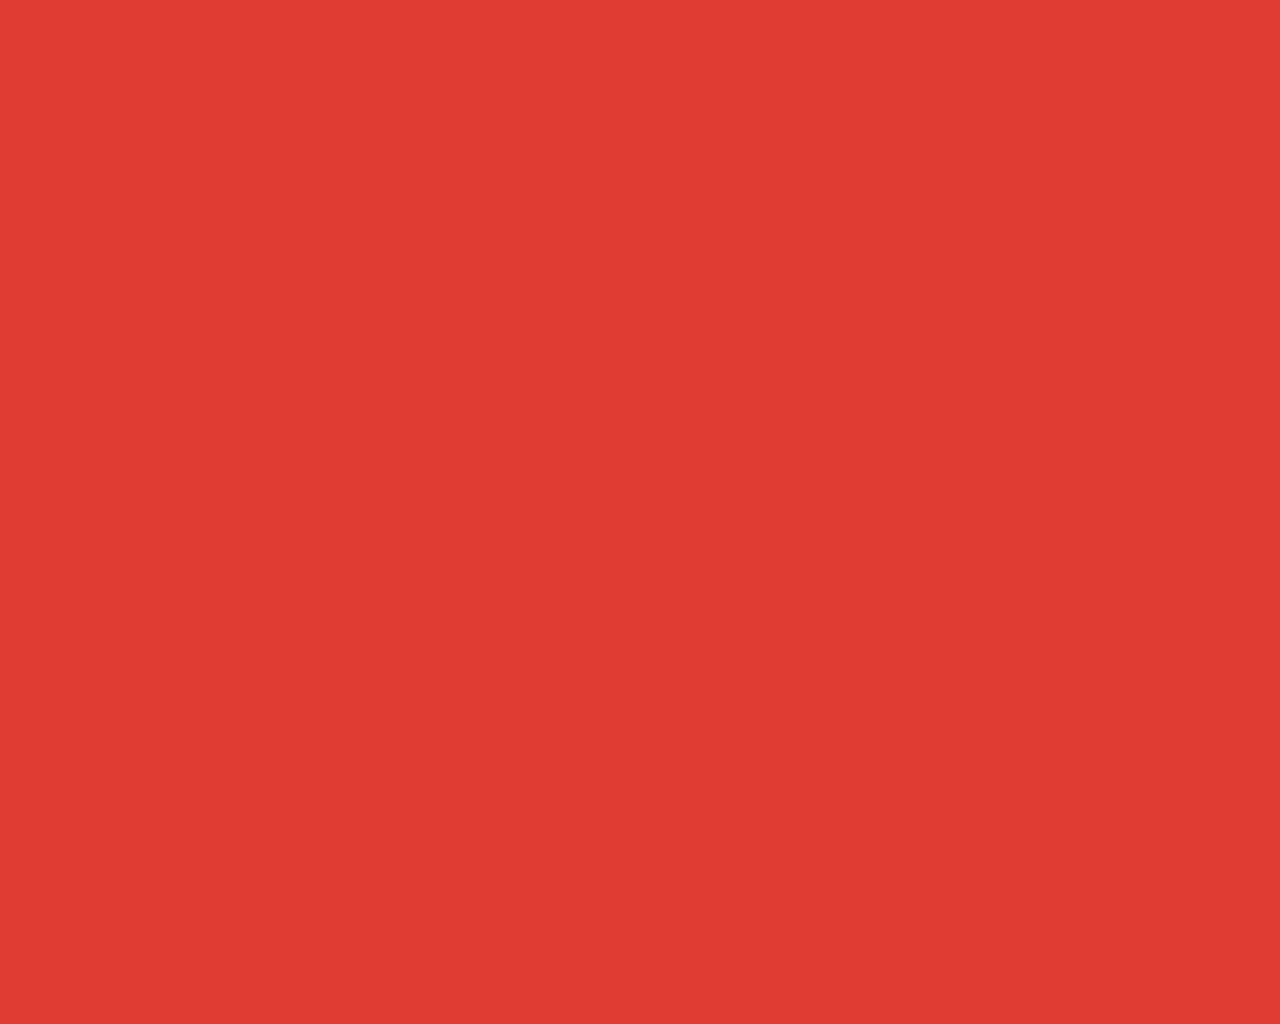 1280x1024 CG Red Solid Color Background